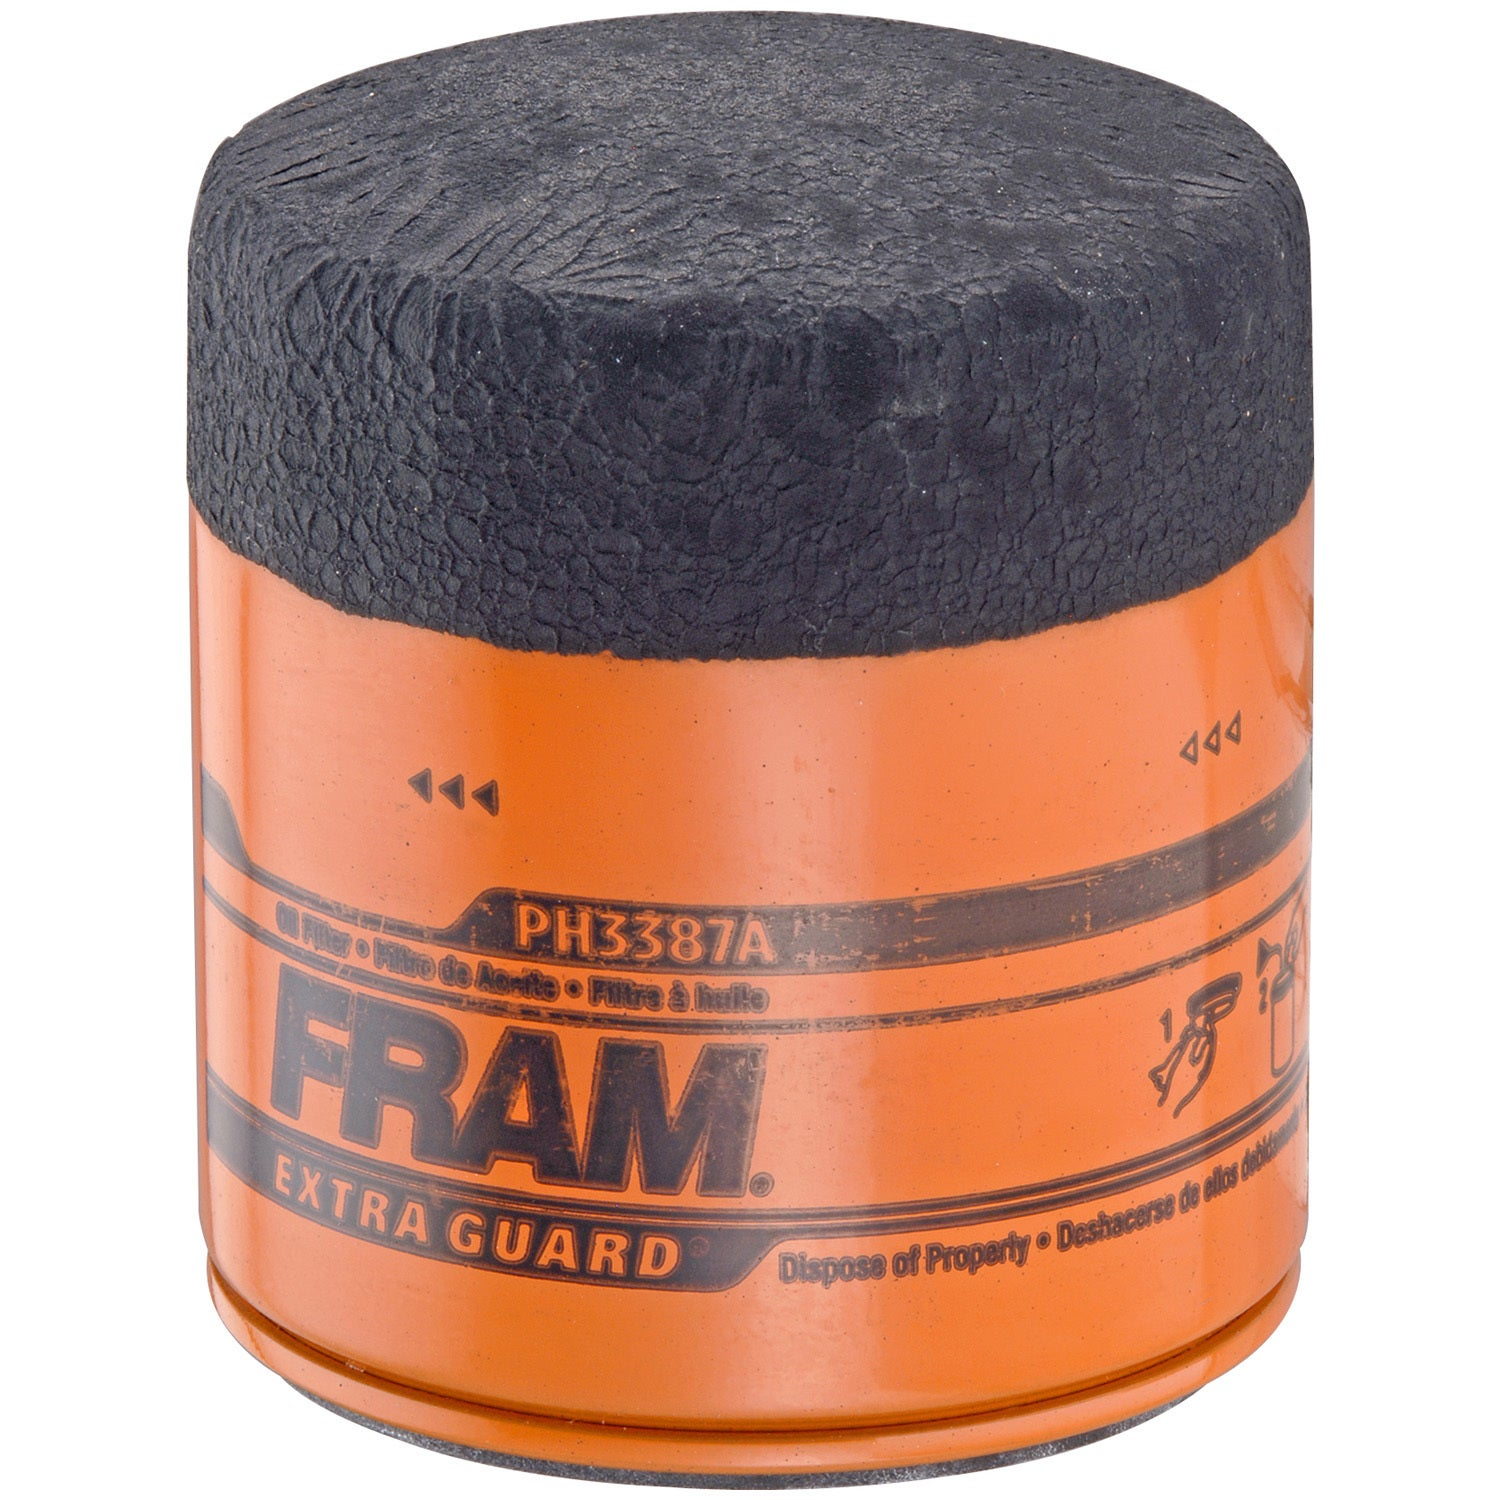 Fram PH3387A PH3387A Extra Guard Oil Filters (Auto tools)...